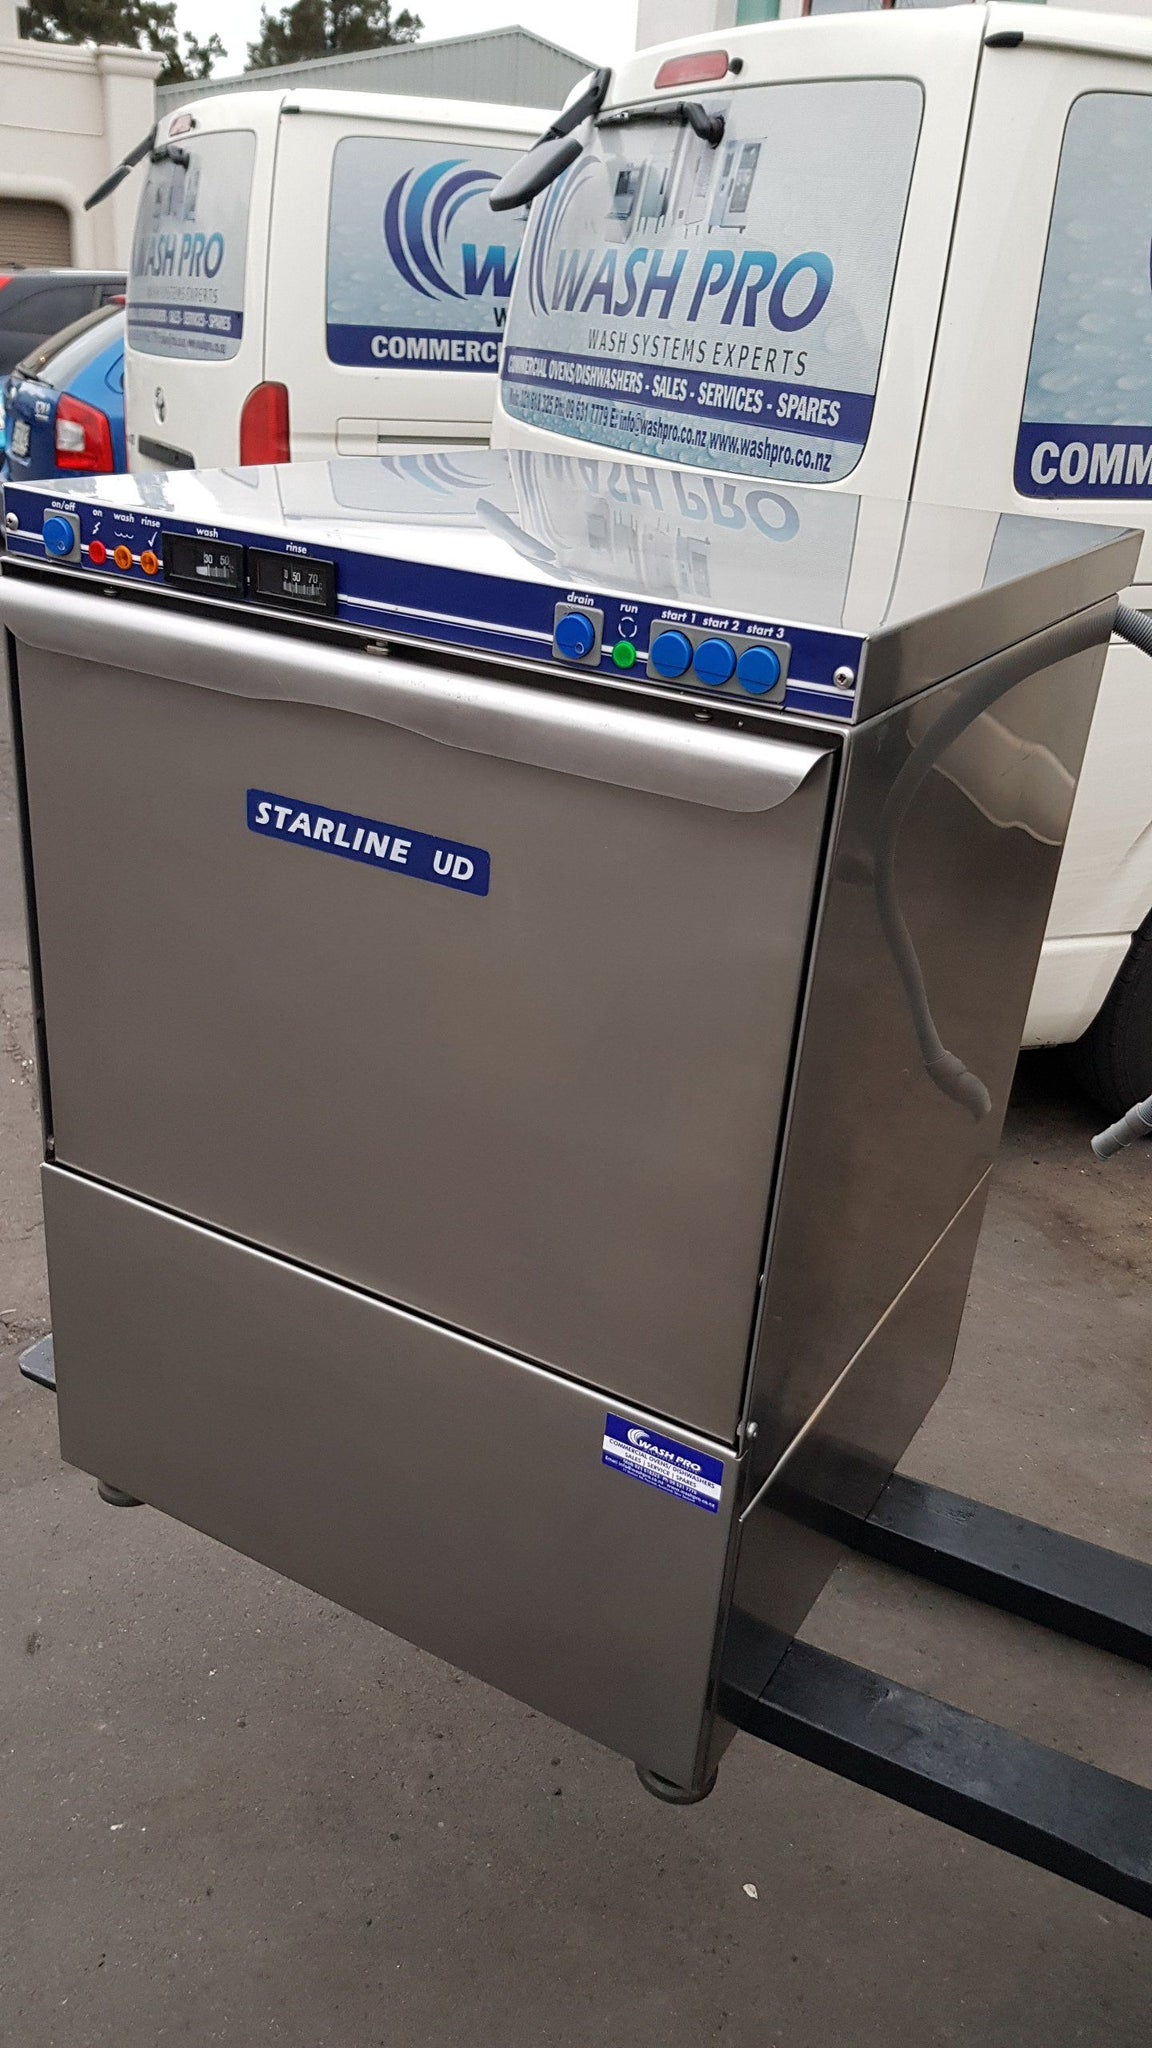 APS186 Starline UD Commercial dishwasher with Warranty Free freight Nationwide main cities only - Washpro